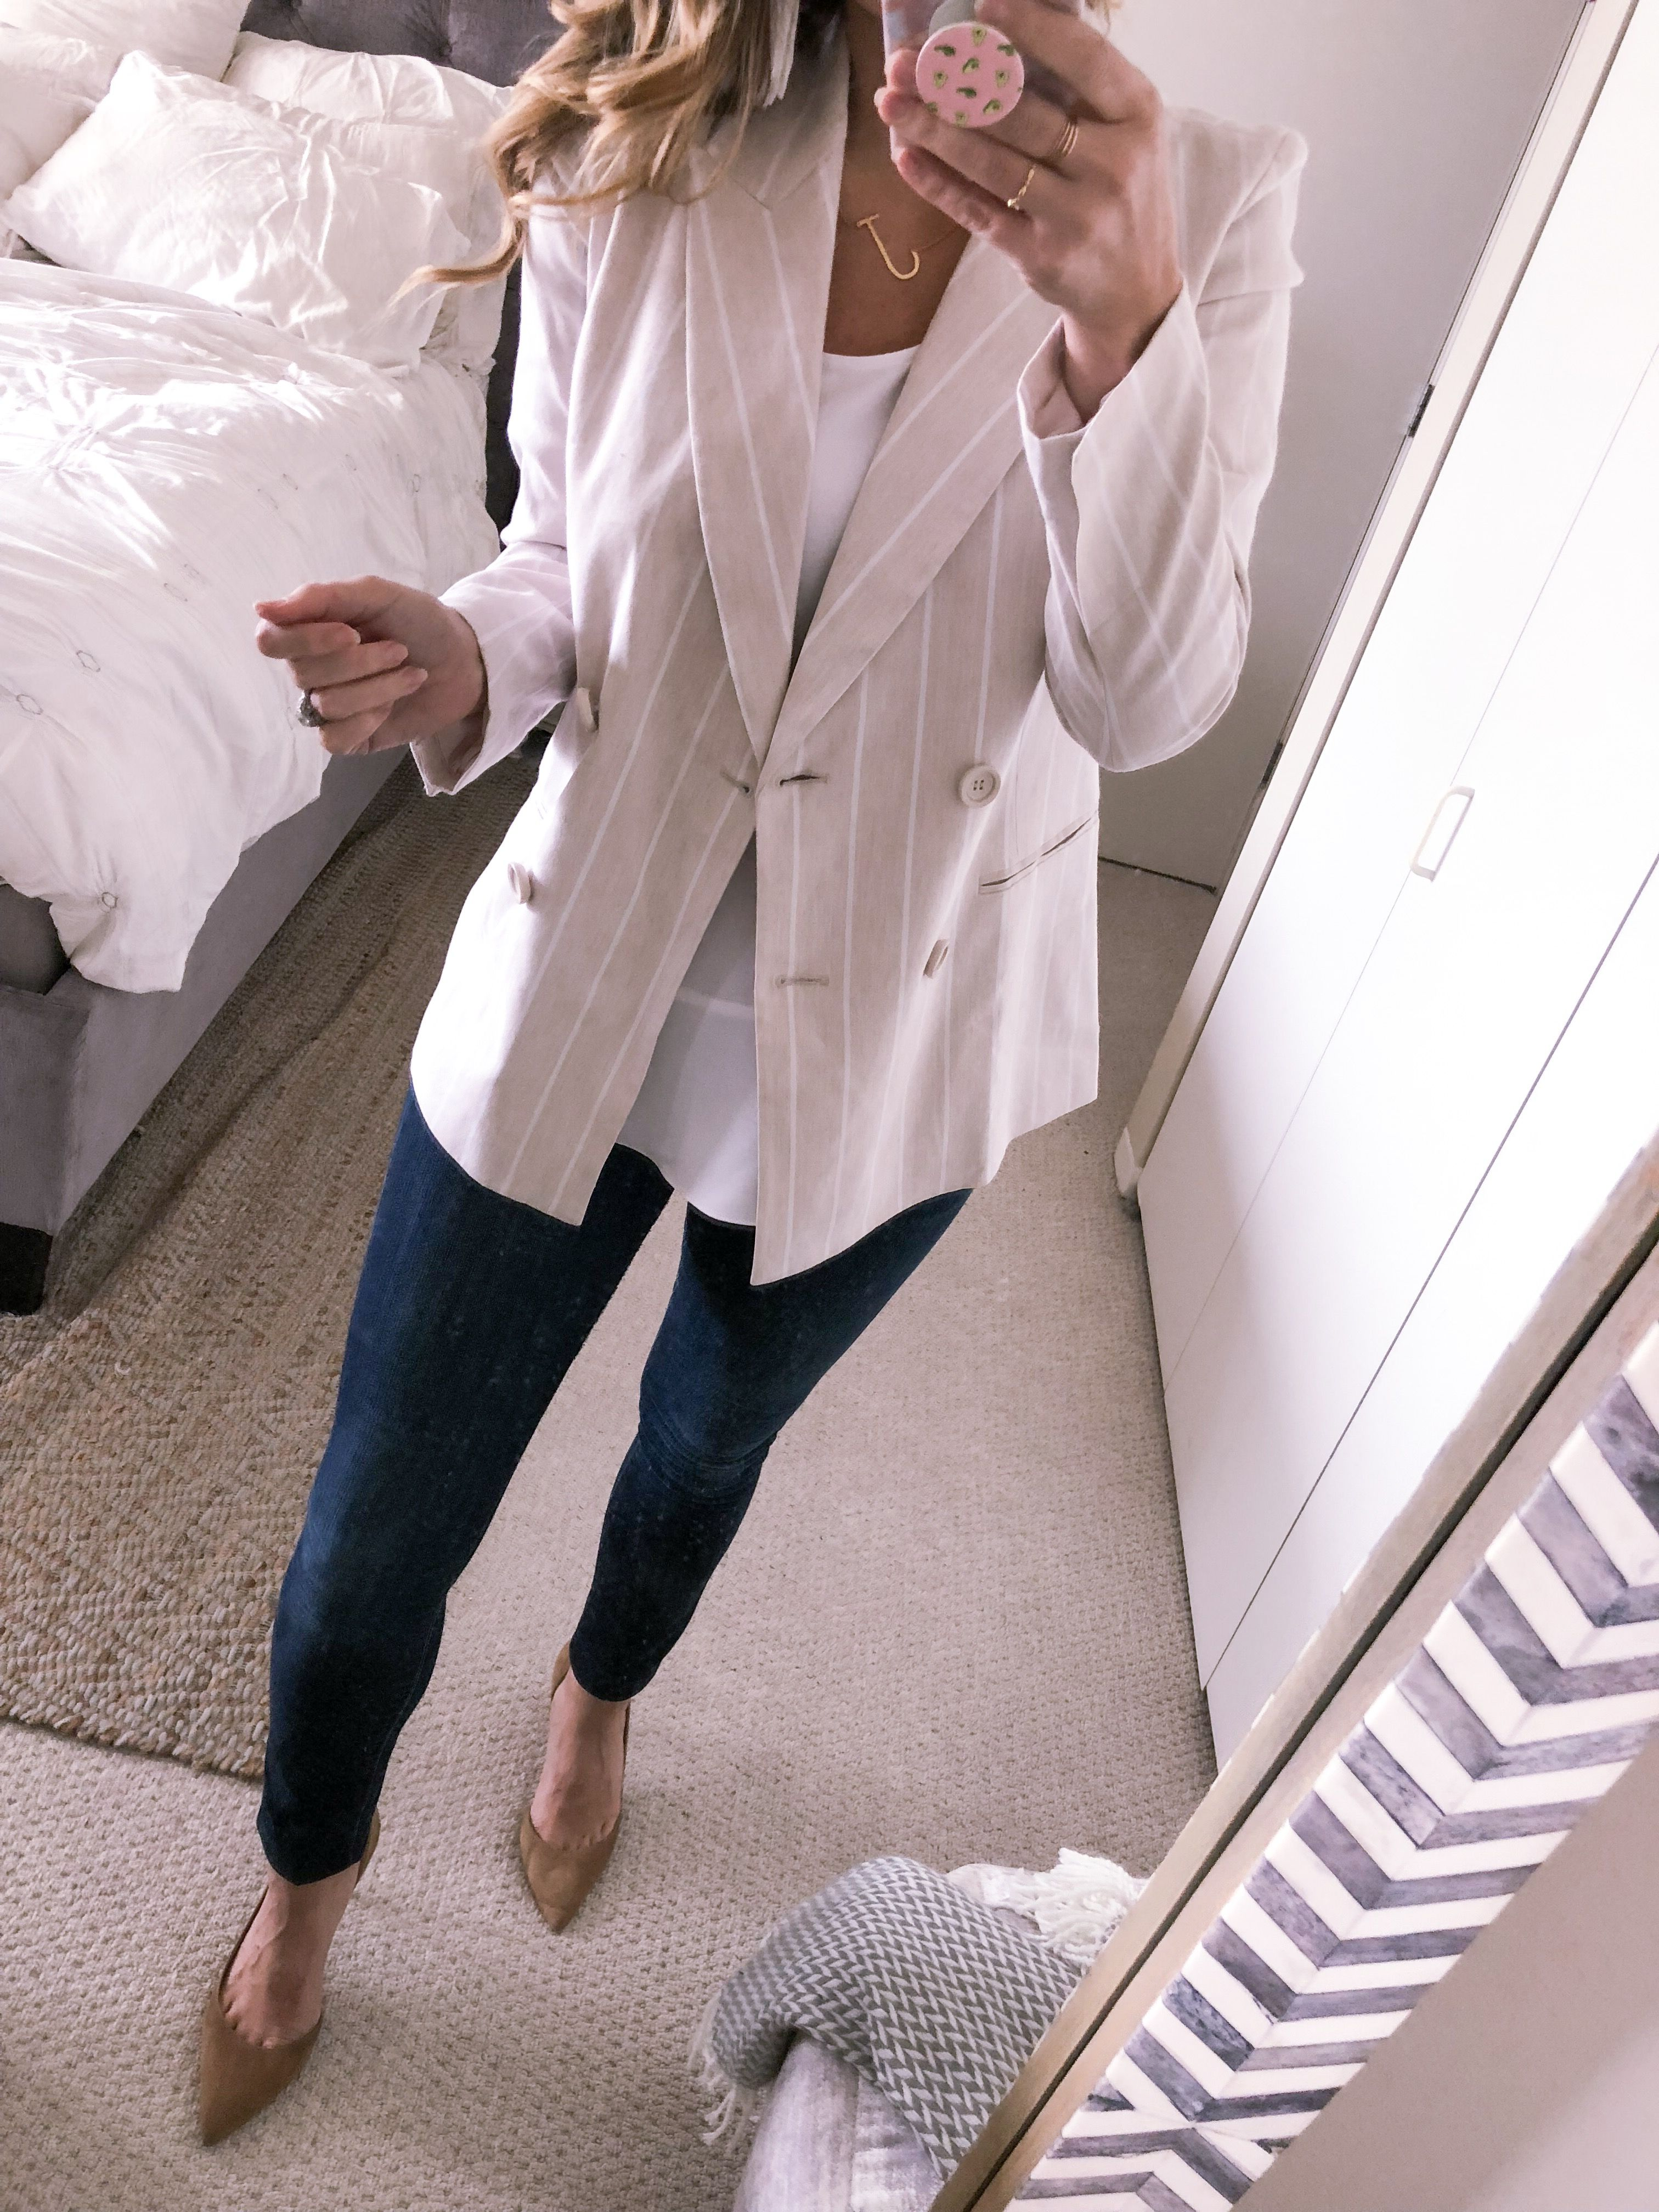 Striped Beige Linen Blazer With Skinny Jeans For The Office